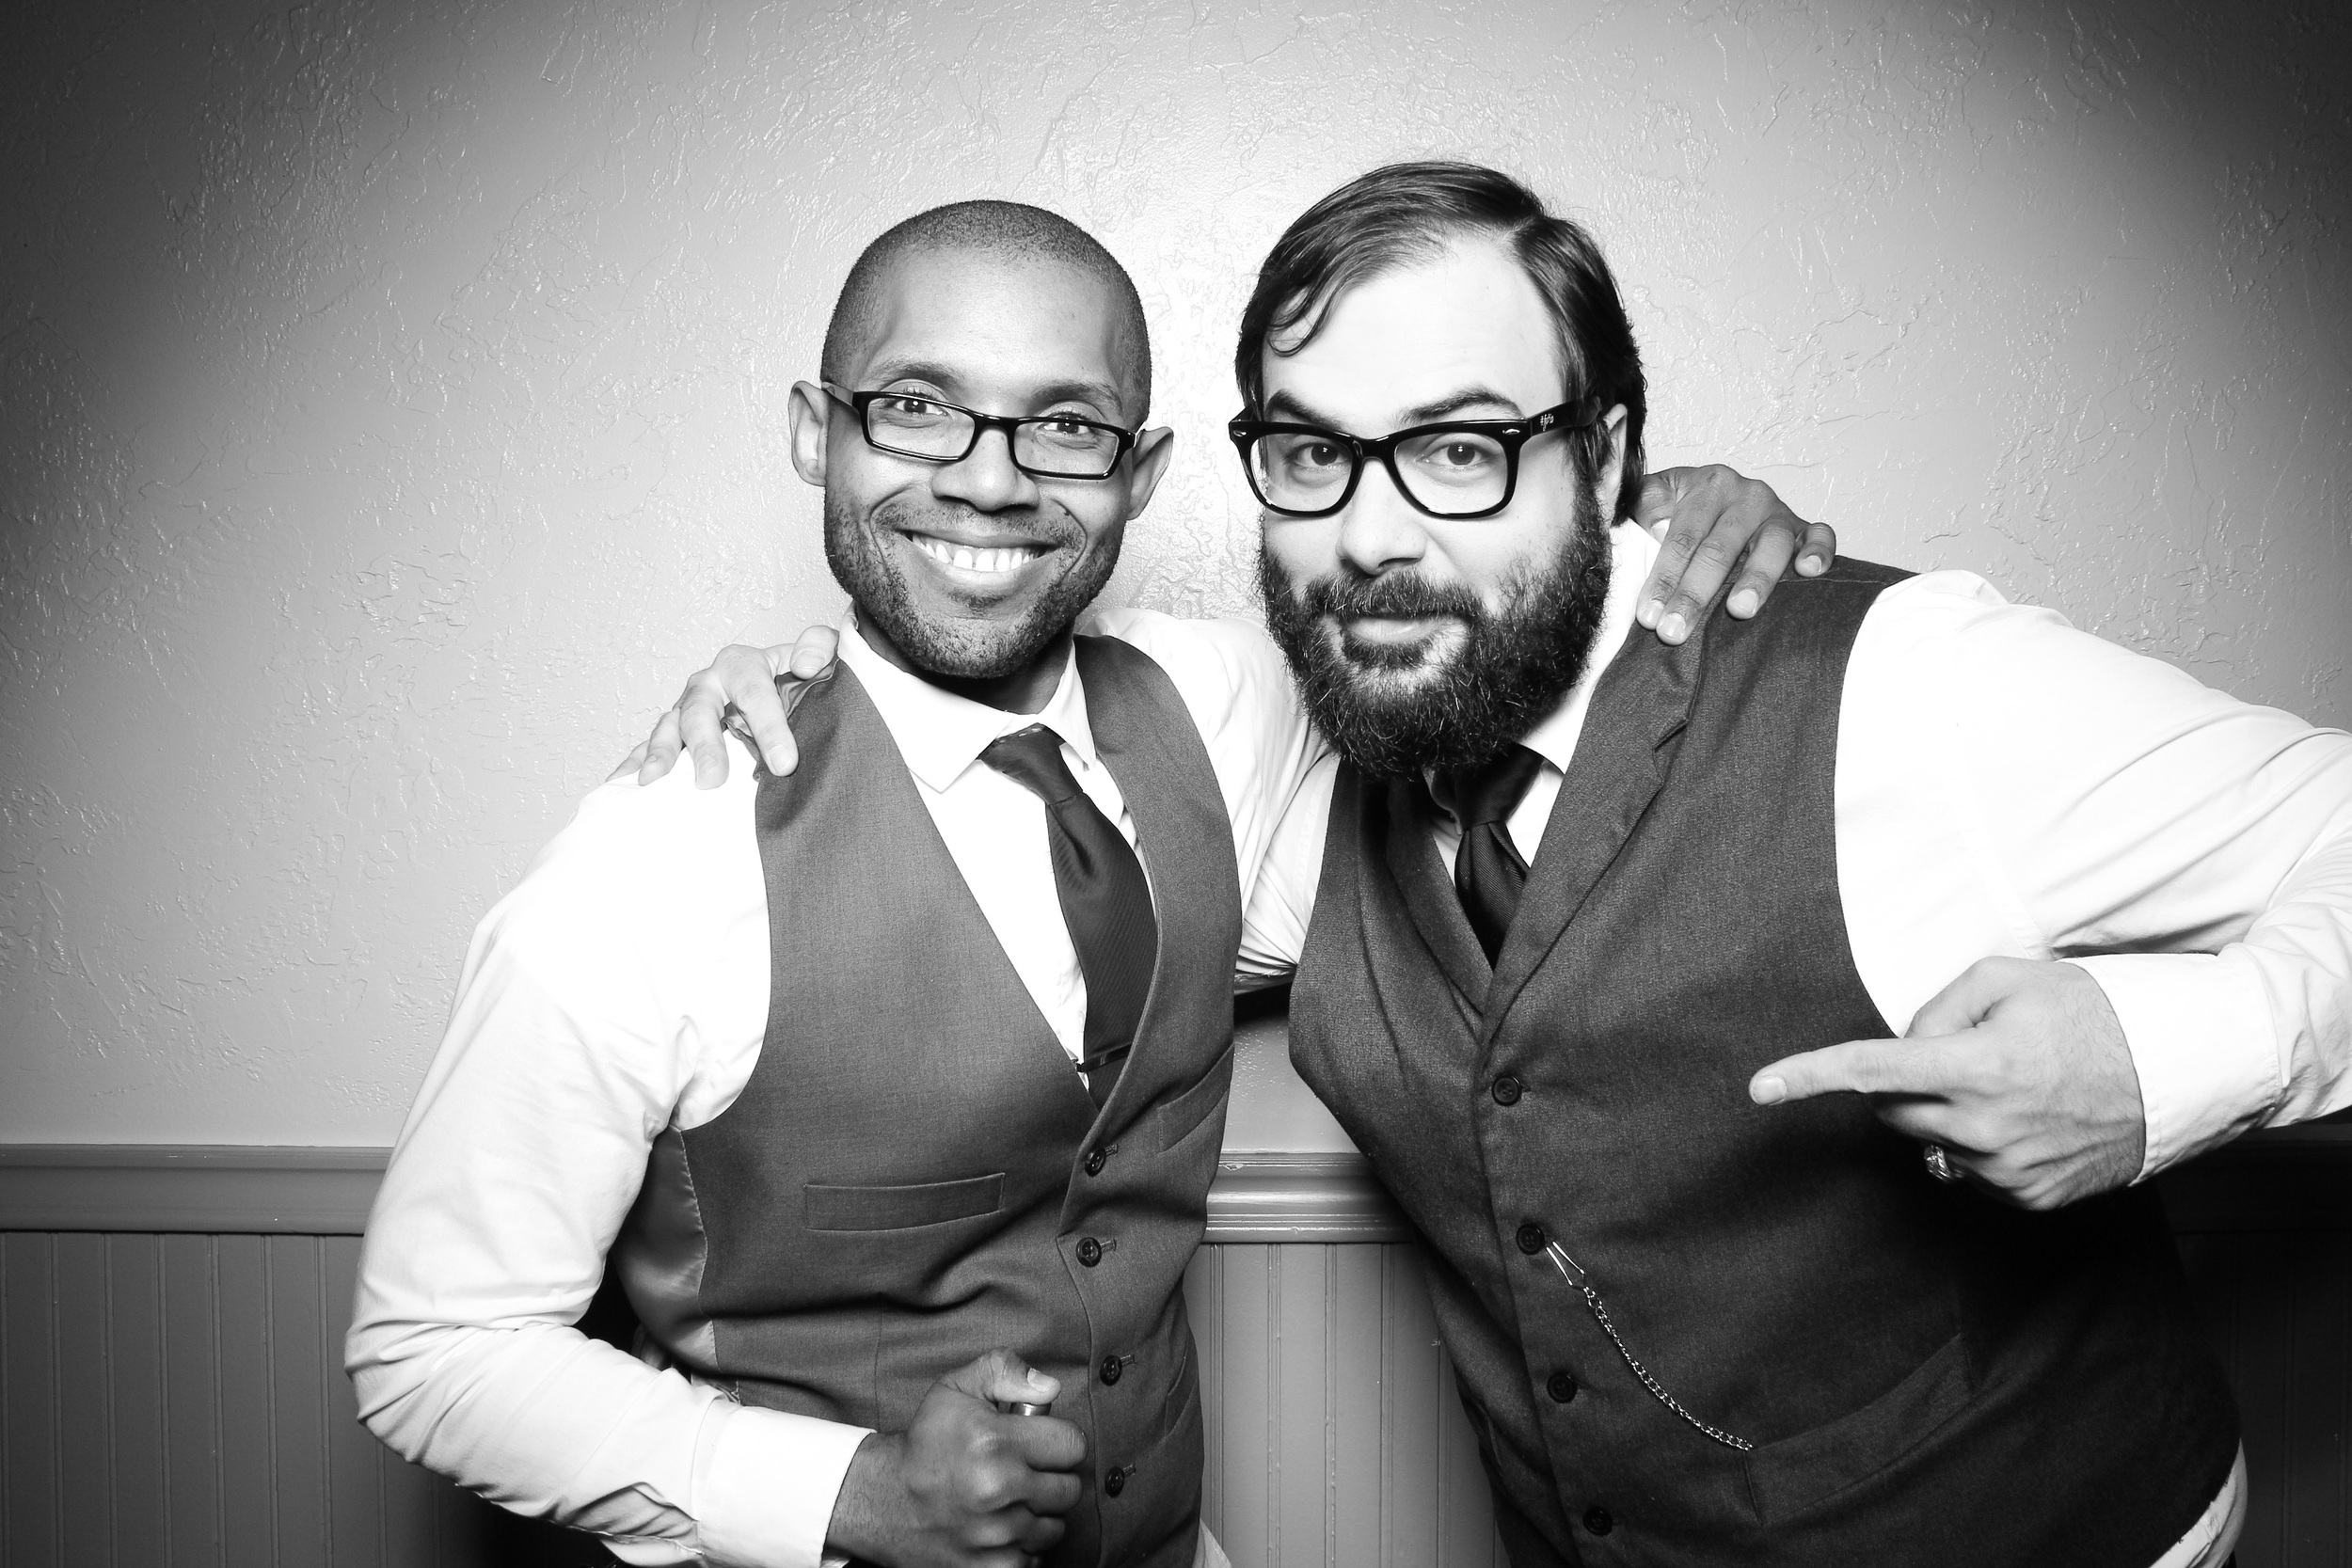 Fotio attendant Nick Harvey and Chicago DJ Brent Rolland pose for a photo booth picture at River Roast!